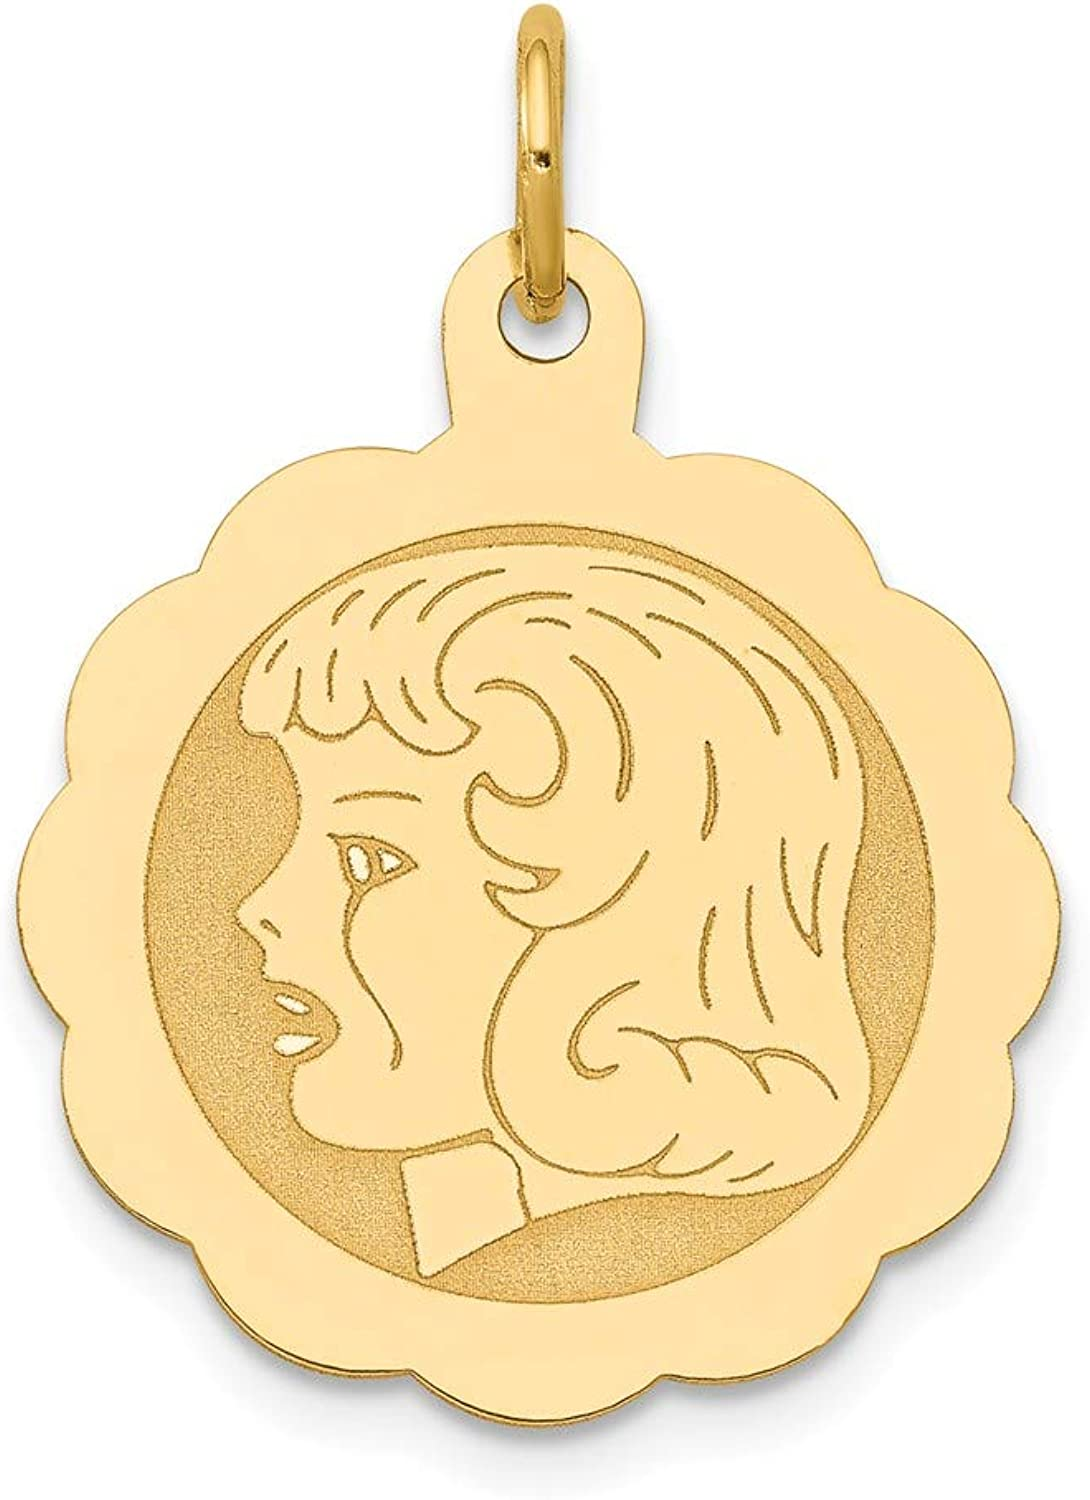 Beautiful Yellow gold 14K Yellowgold 14k Girl Head on .013 Gauge Engravable Scalloped Disc Charm